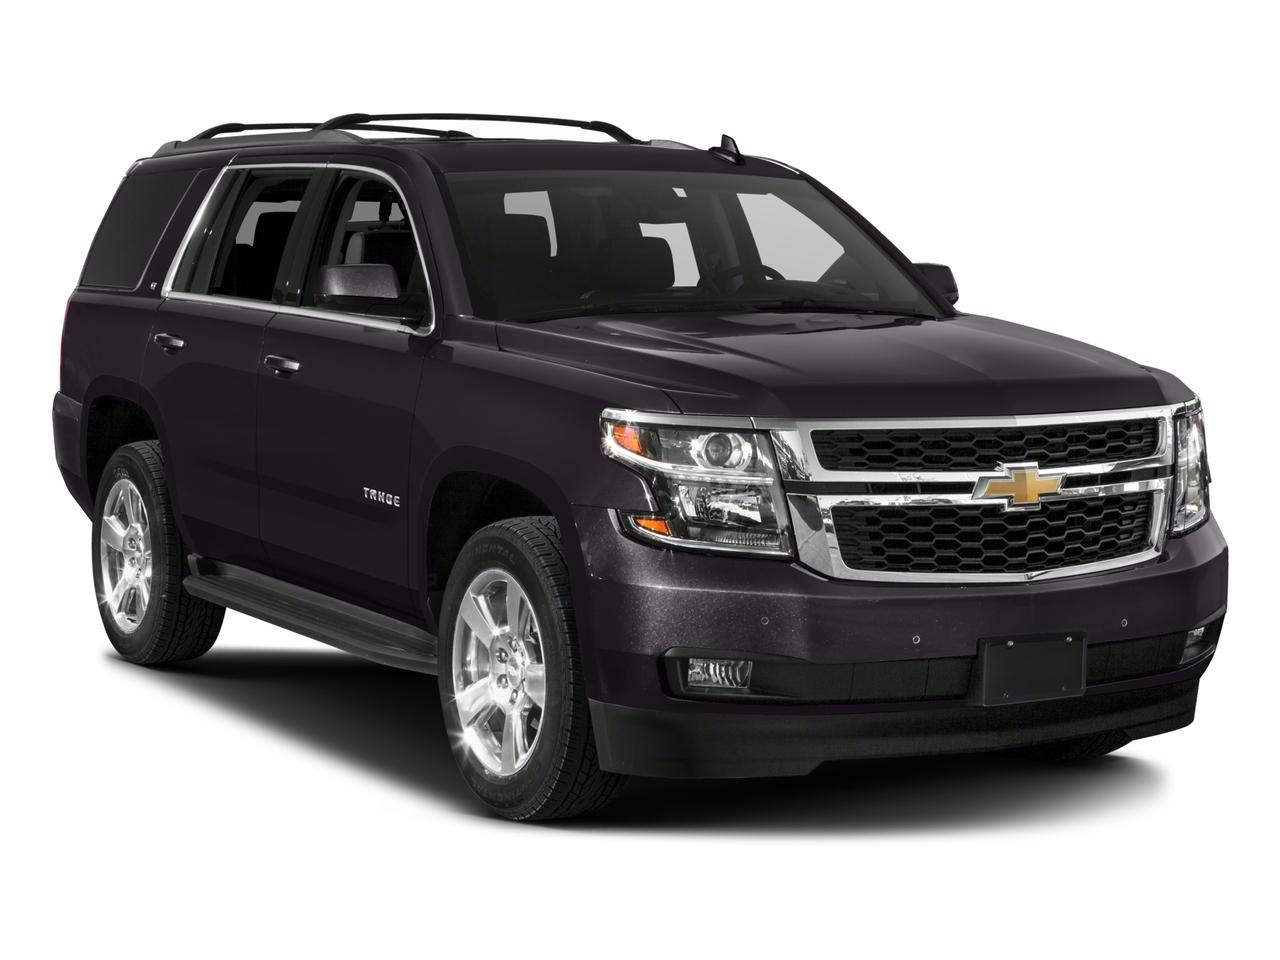 Covert Chevrolet Hutto >> Used 2017 Chevrolet Tahoe l Hutto TX near Austin l Covert Country of Hutto 1GNSKBKC1HR283030